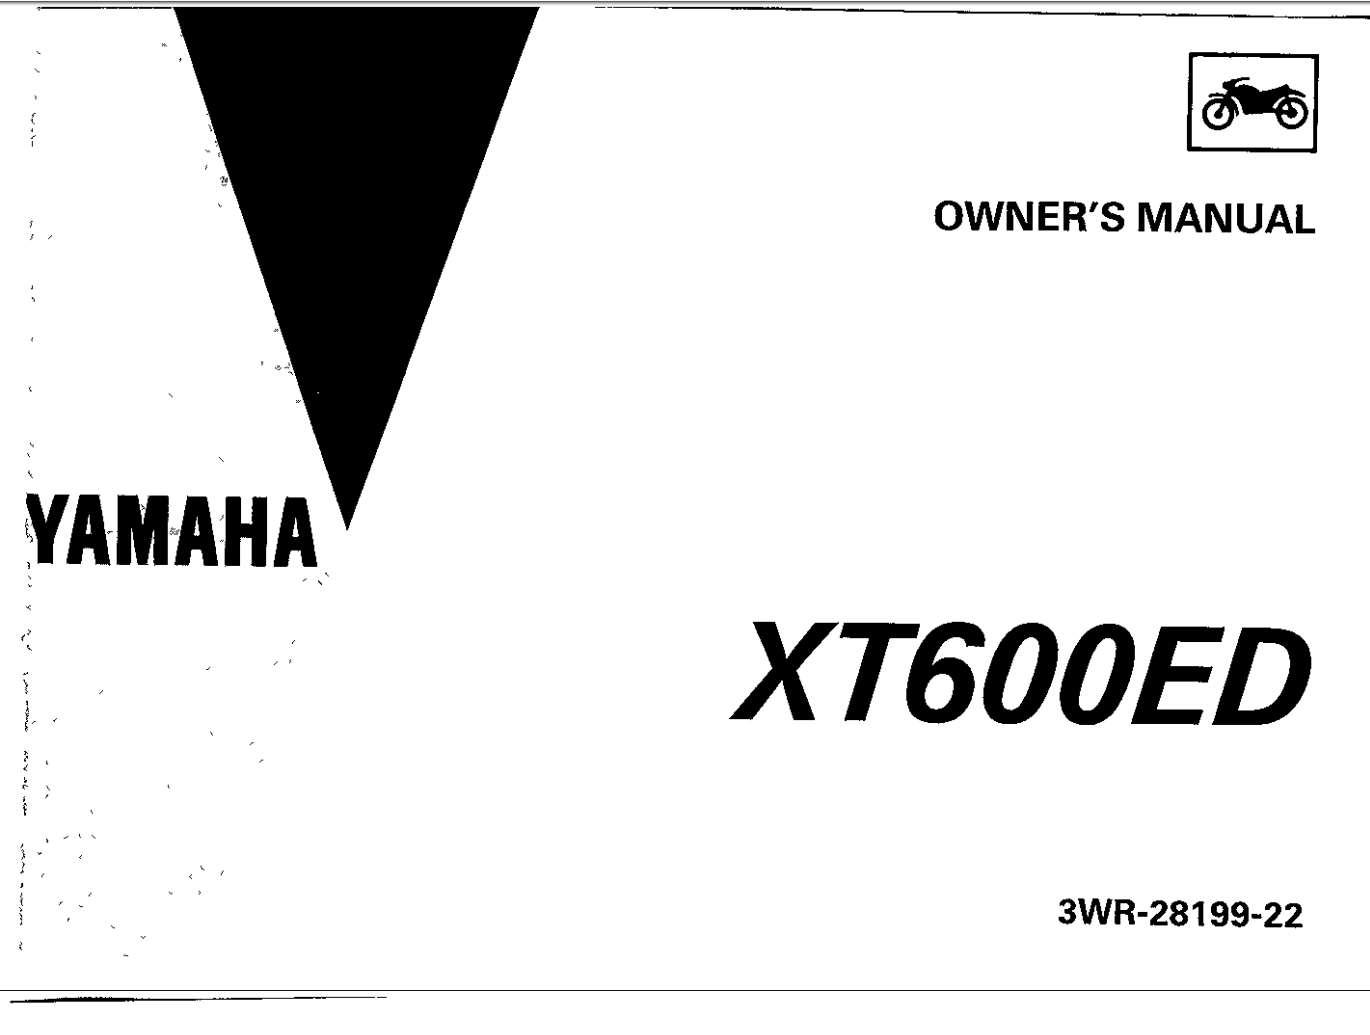 Yamaha XT600E D 1992 Owner's Manual